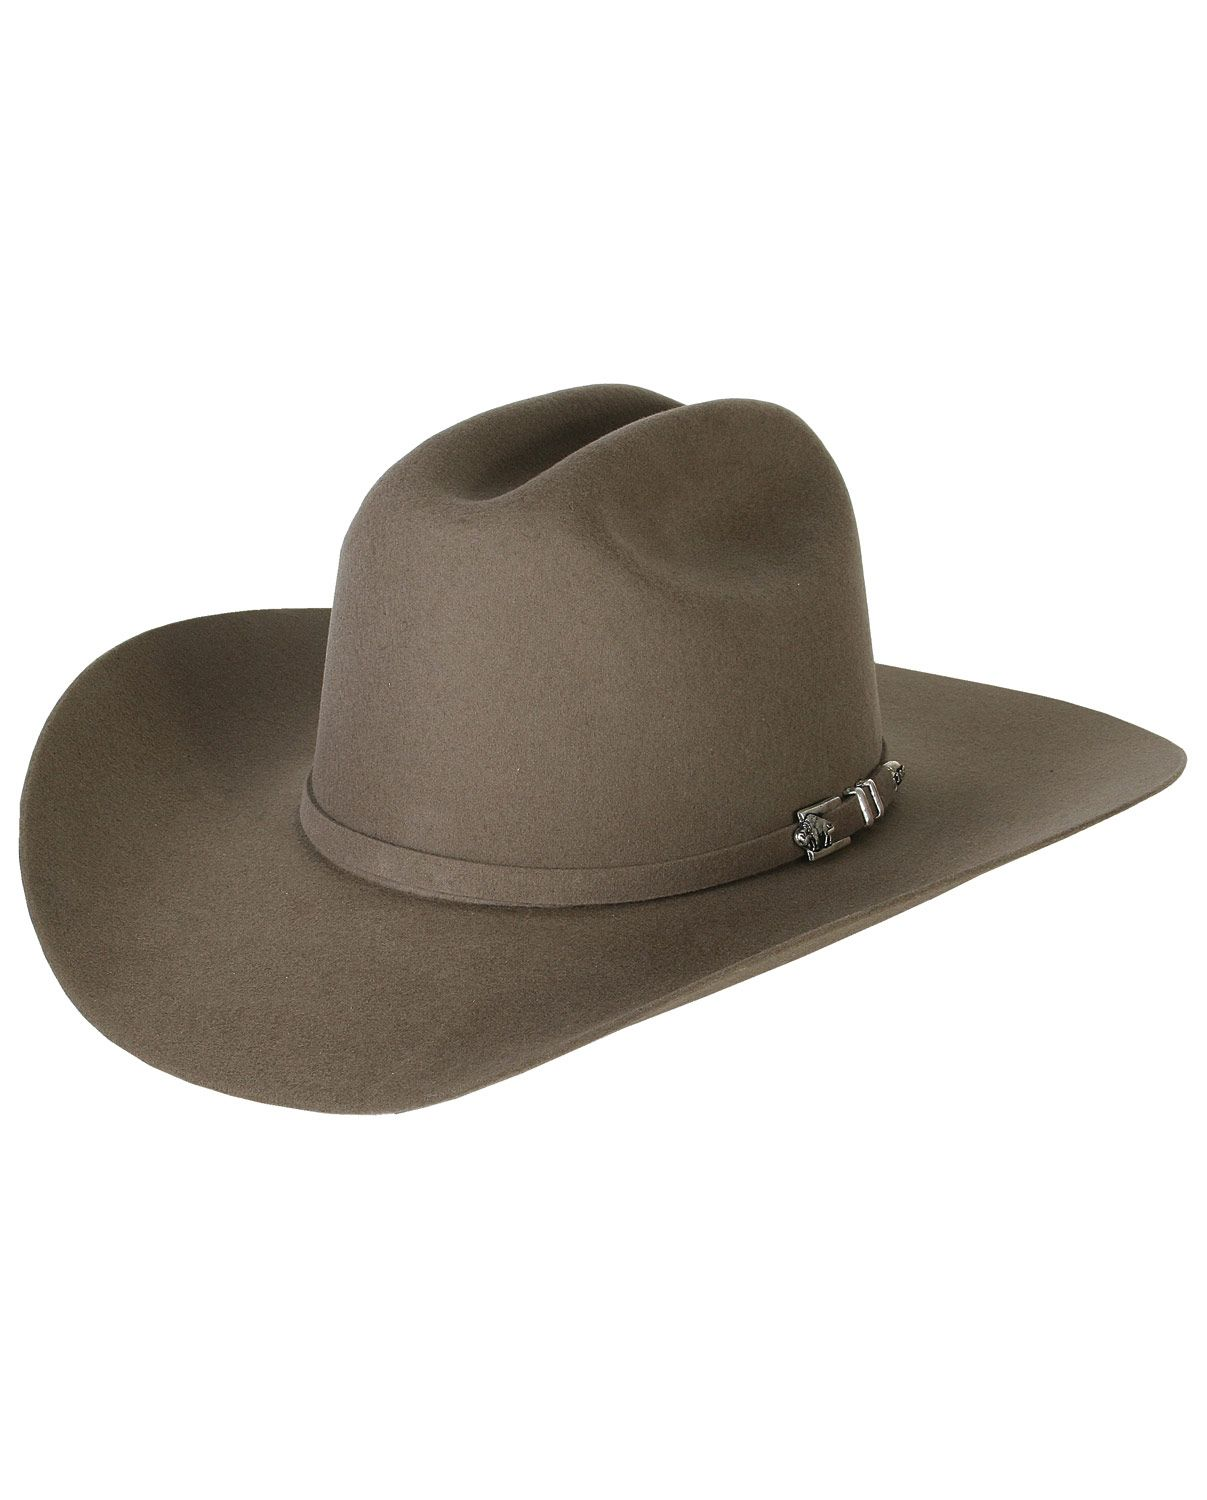 92cbedb2 cowboy hats | Mouse over image above to zoom | Hats | Sombreros